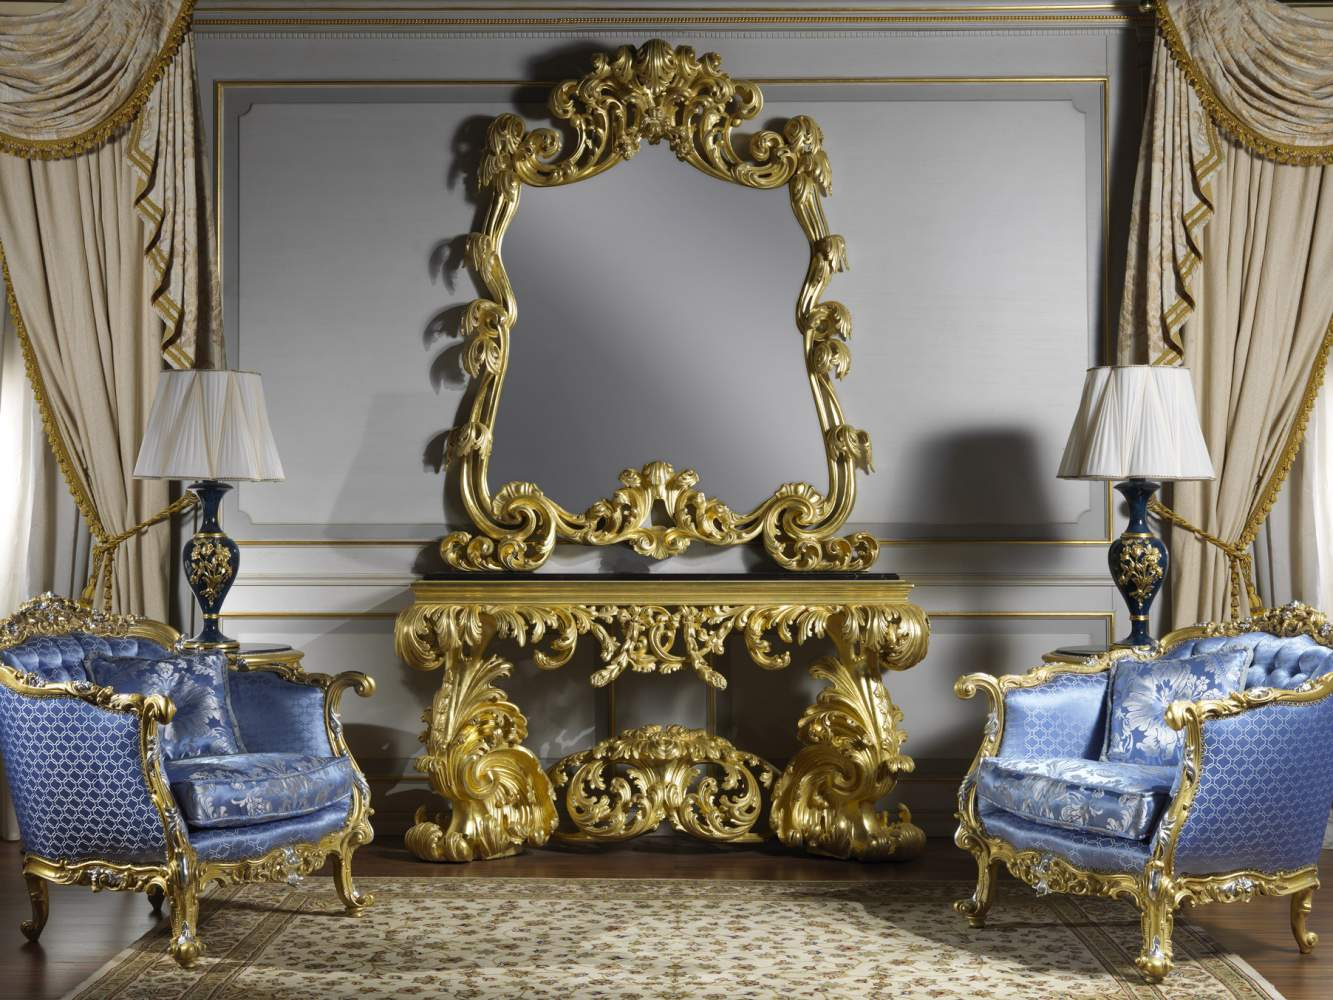 Baroque console in style art.995